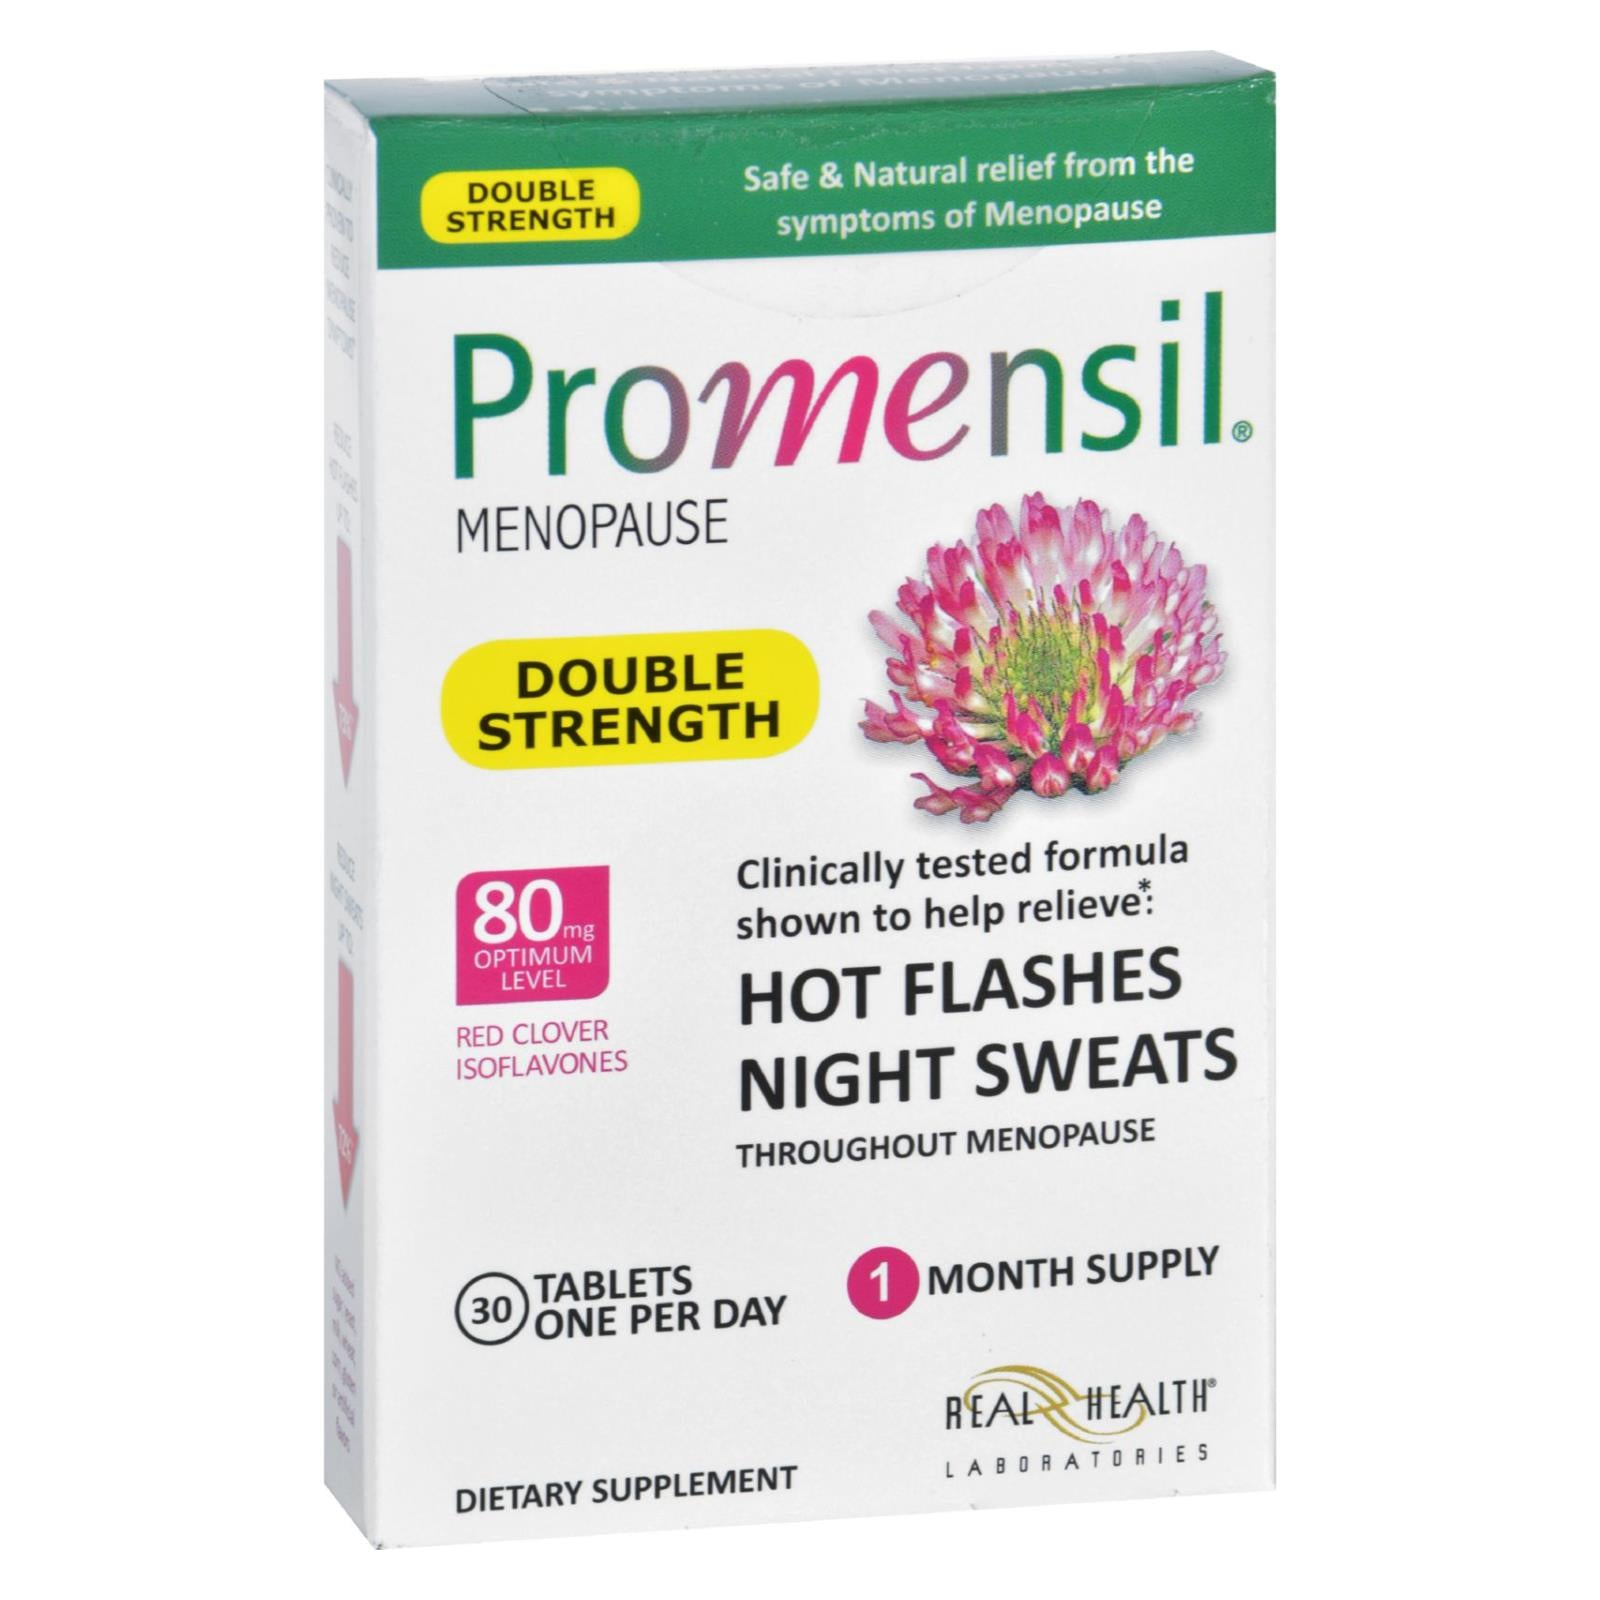 Promensil Menopause - Double Strength - Relief Hot Flashes Night Sweats - 30 Tablets HG1637230